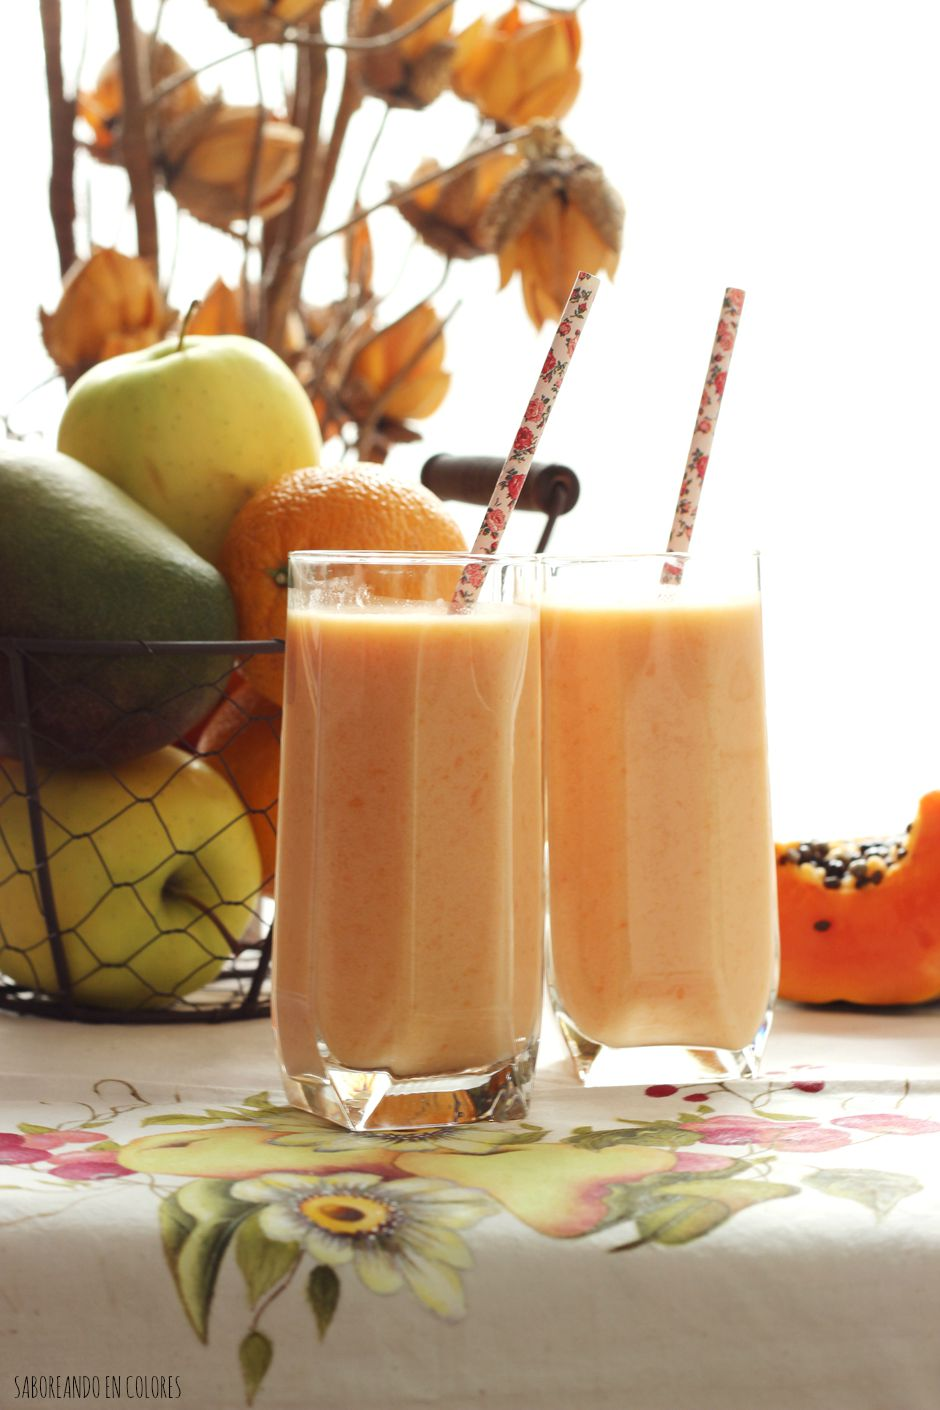 Un smoothie de papaya y piña super refrescante y delicioso!